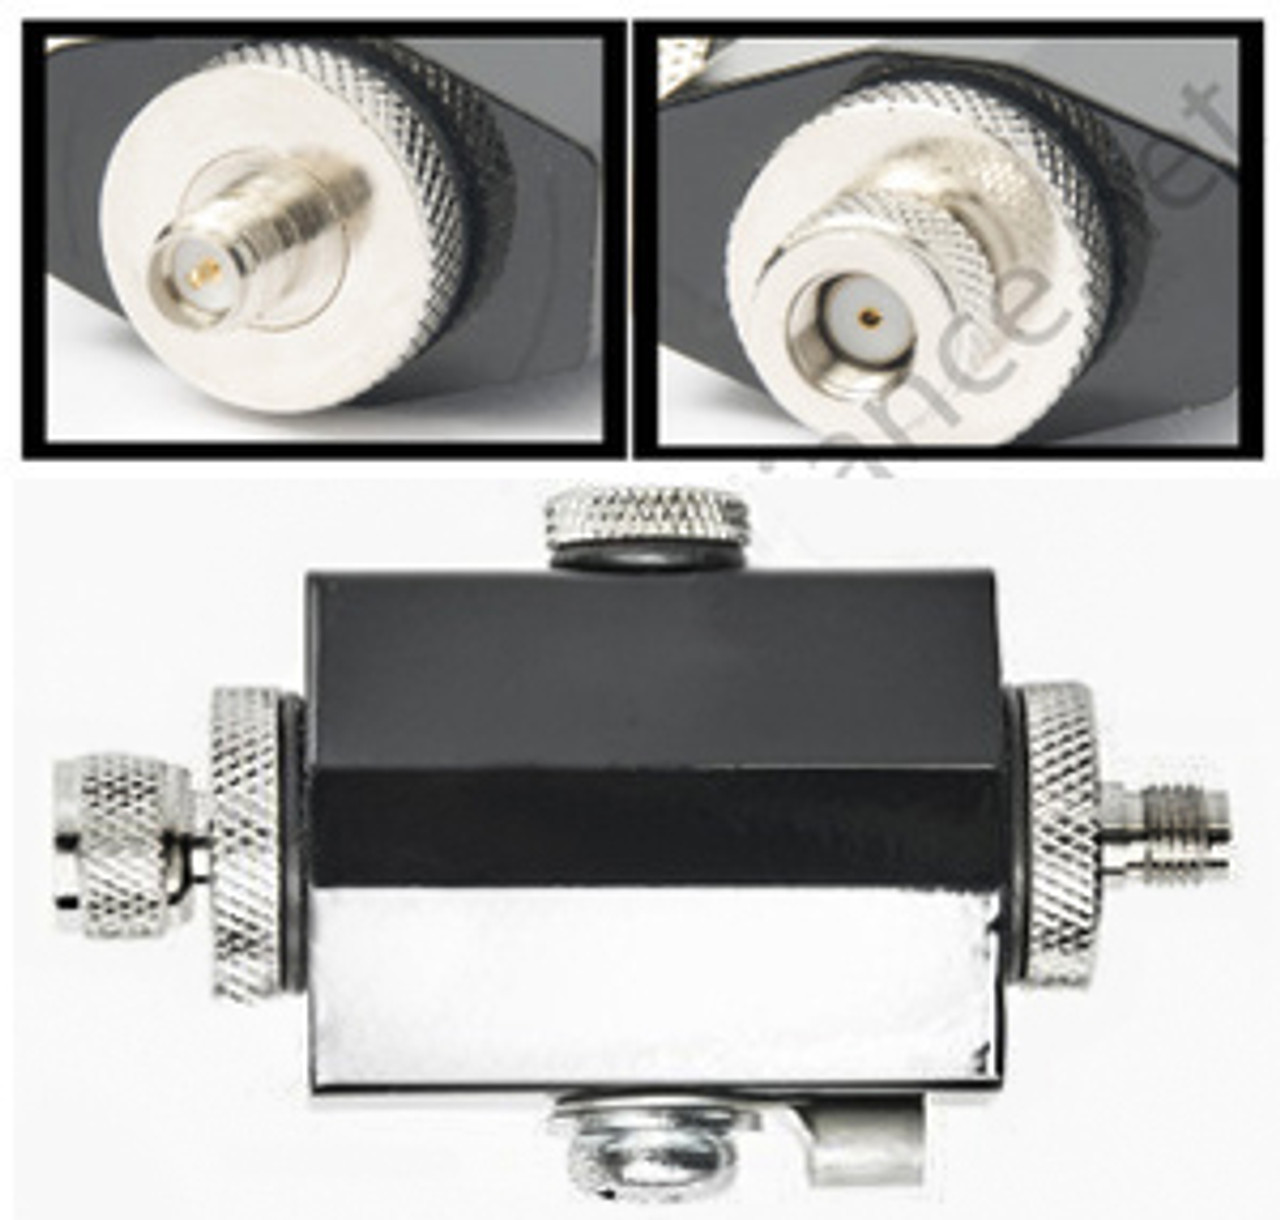 Lightning Surge Arrestor w/ RP-SMA & SMA options, 900MHz, 2.4GHz, 5GHz options